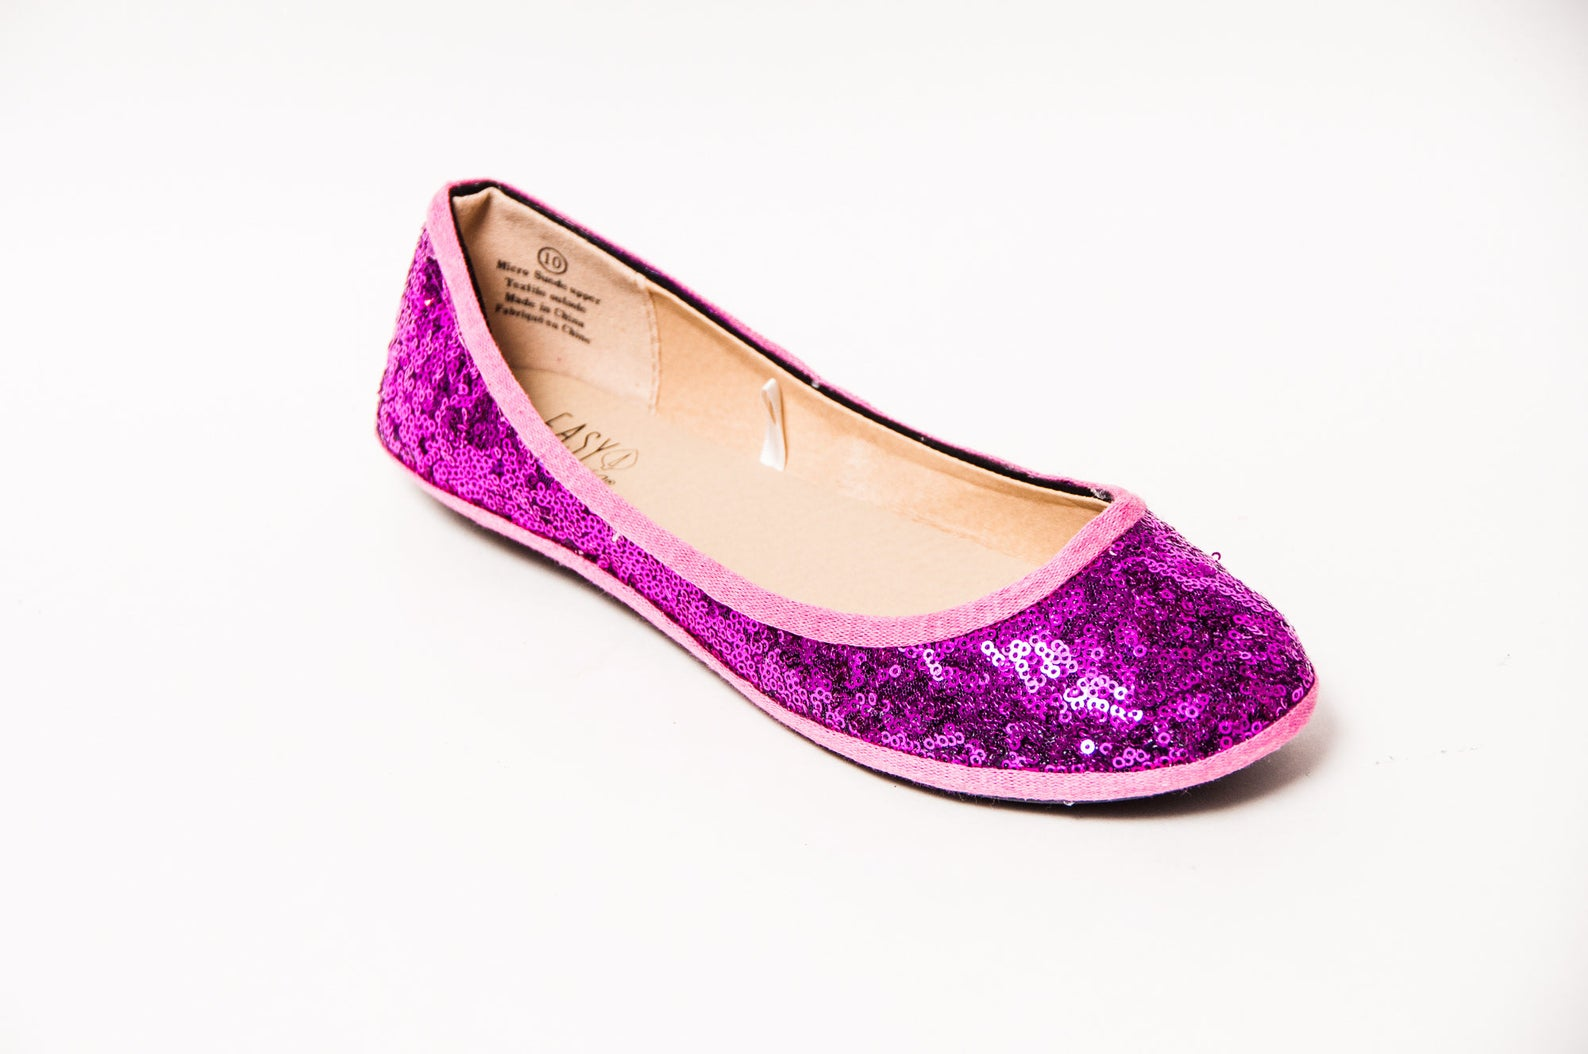 small sequin - starlight fuchsia hot pink slipper ballet flats dress shoes